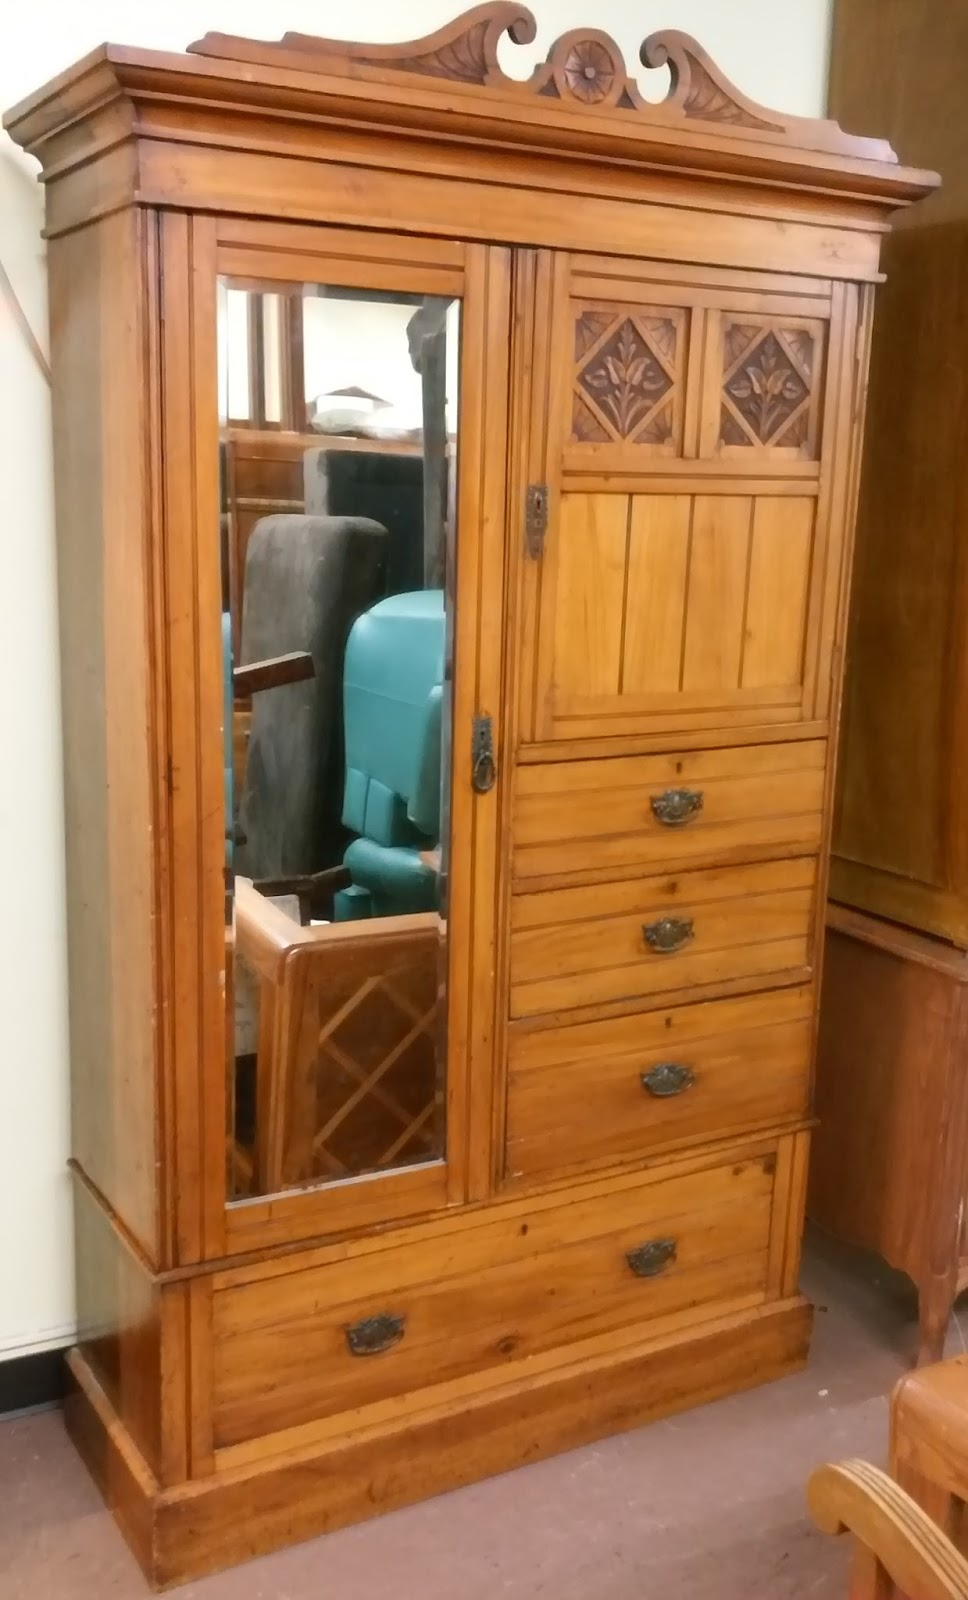 uhuru furniture collectibles sold 50 wide art nouveau armoire 225. Black Bedroom Furniture Sets. Home Design Ideas